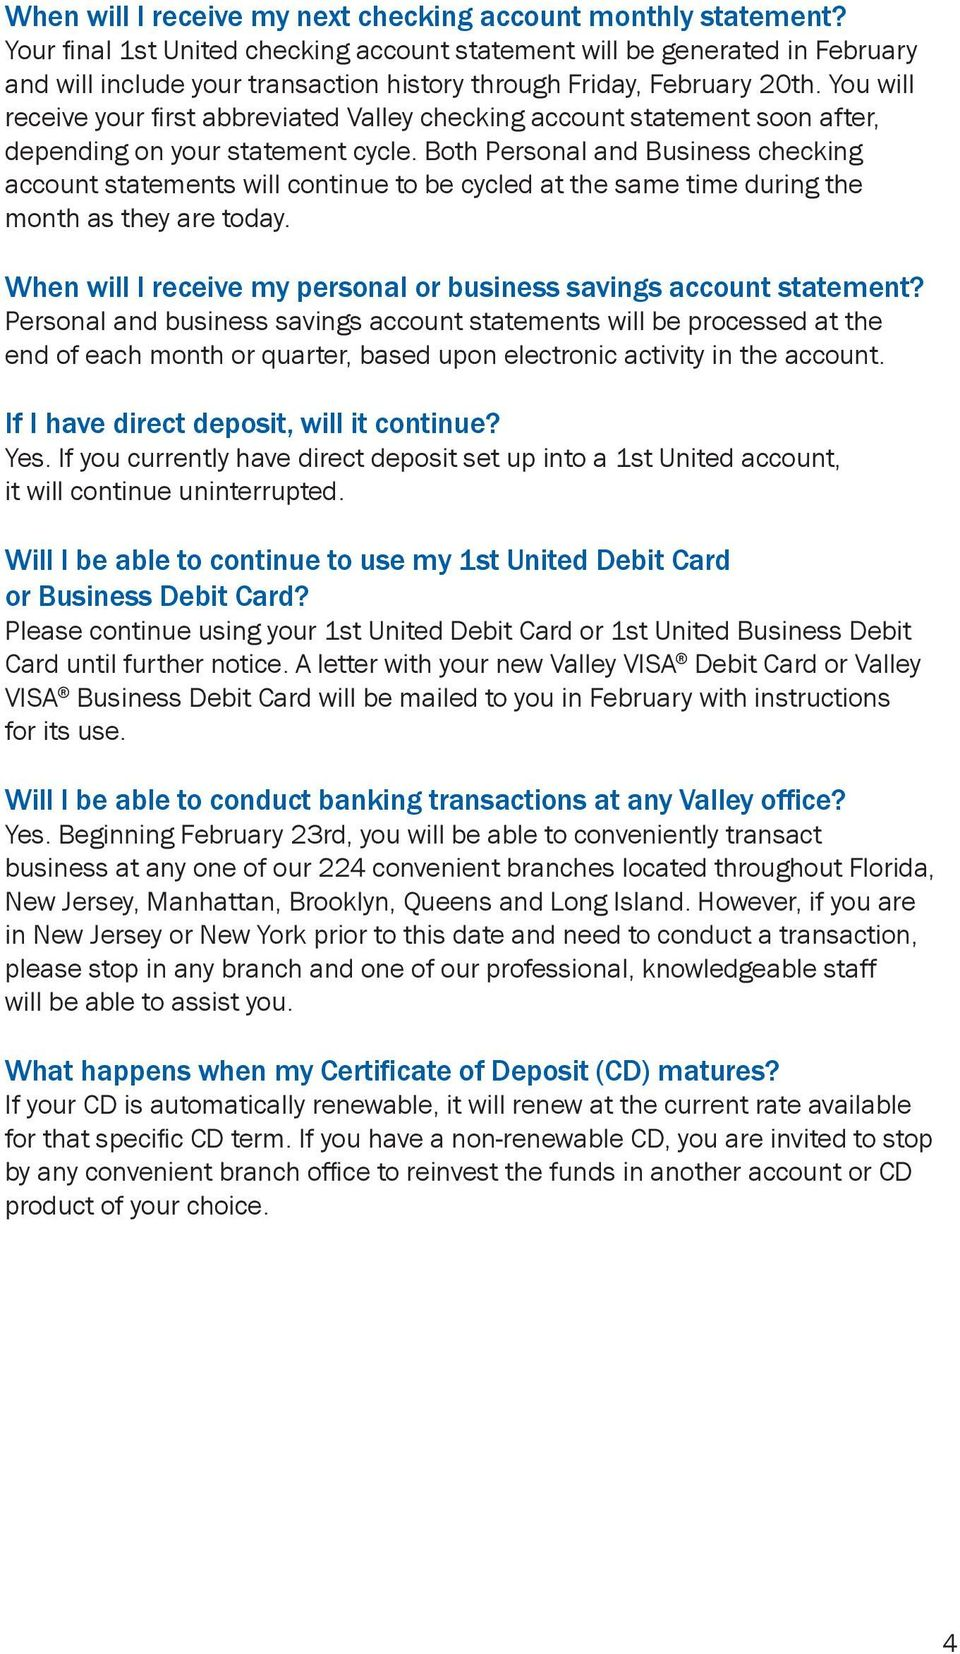 Welcome To Valley National Bank Answers To Important Questions